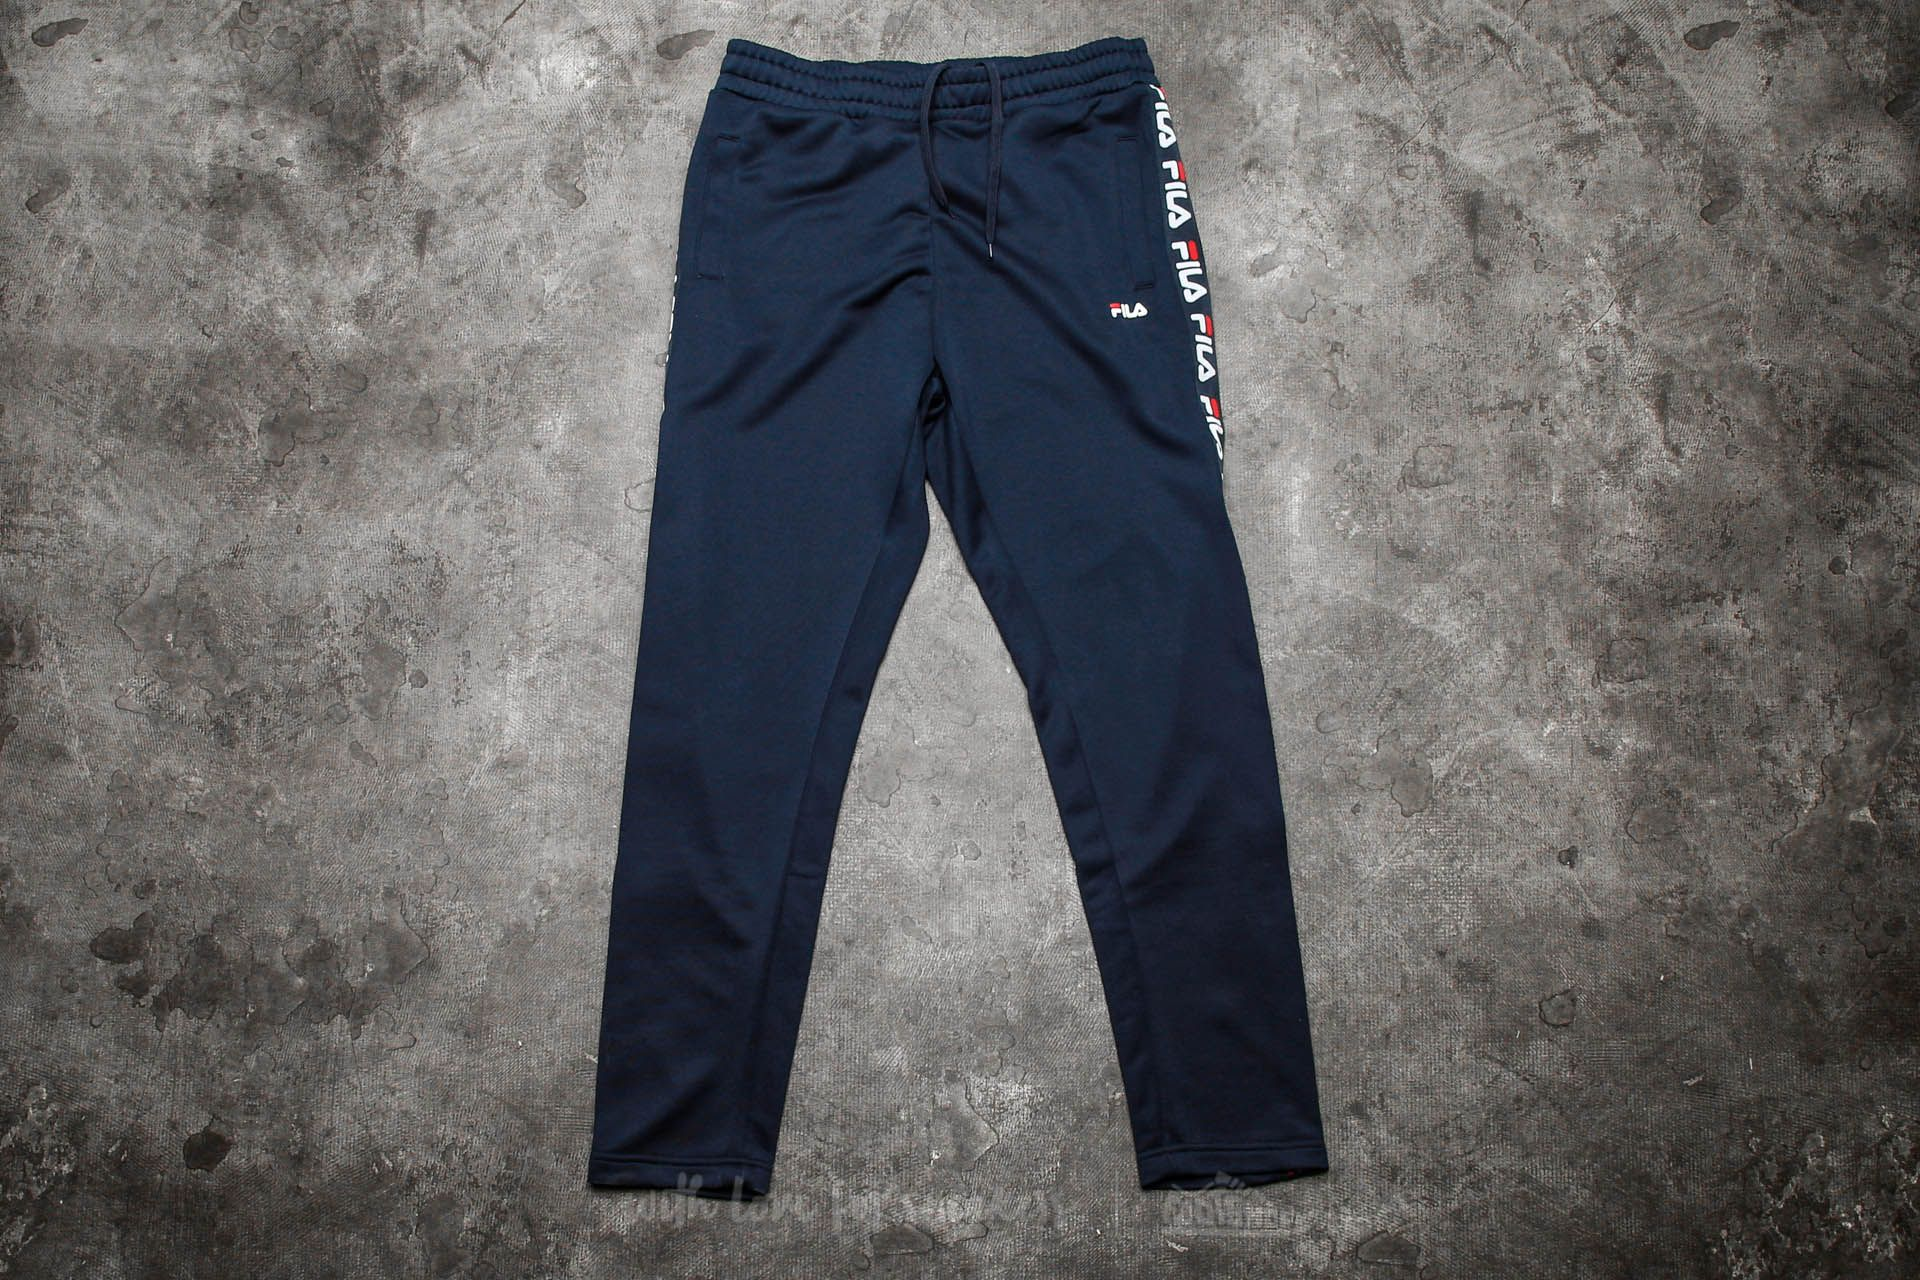 FILA 2nd Track Pants Black Iris - 14812